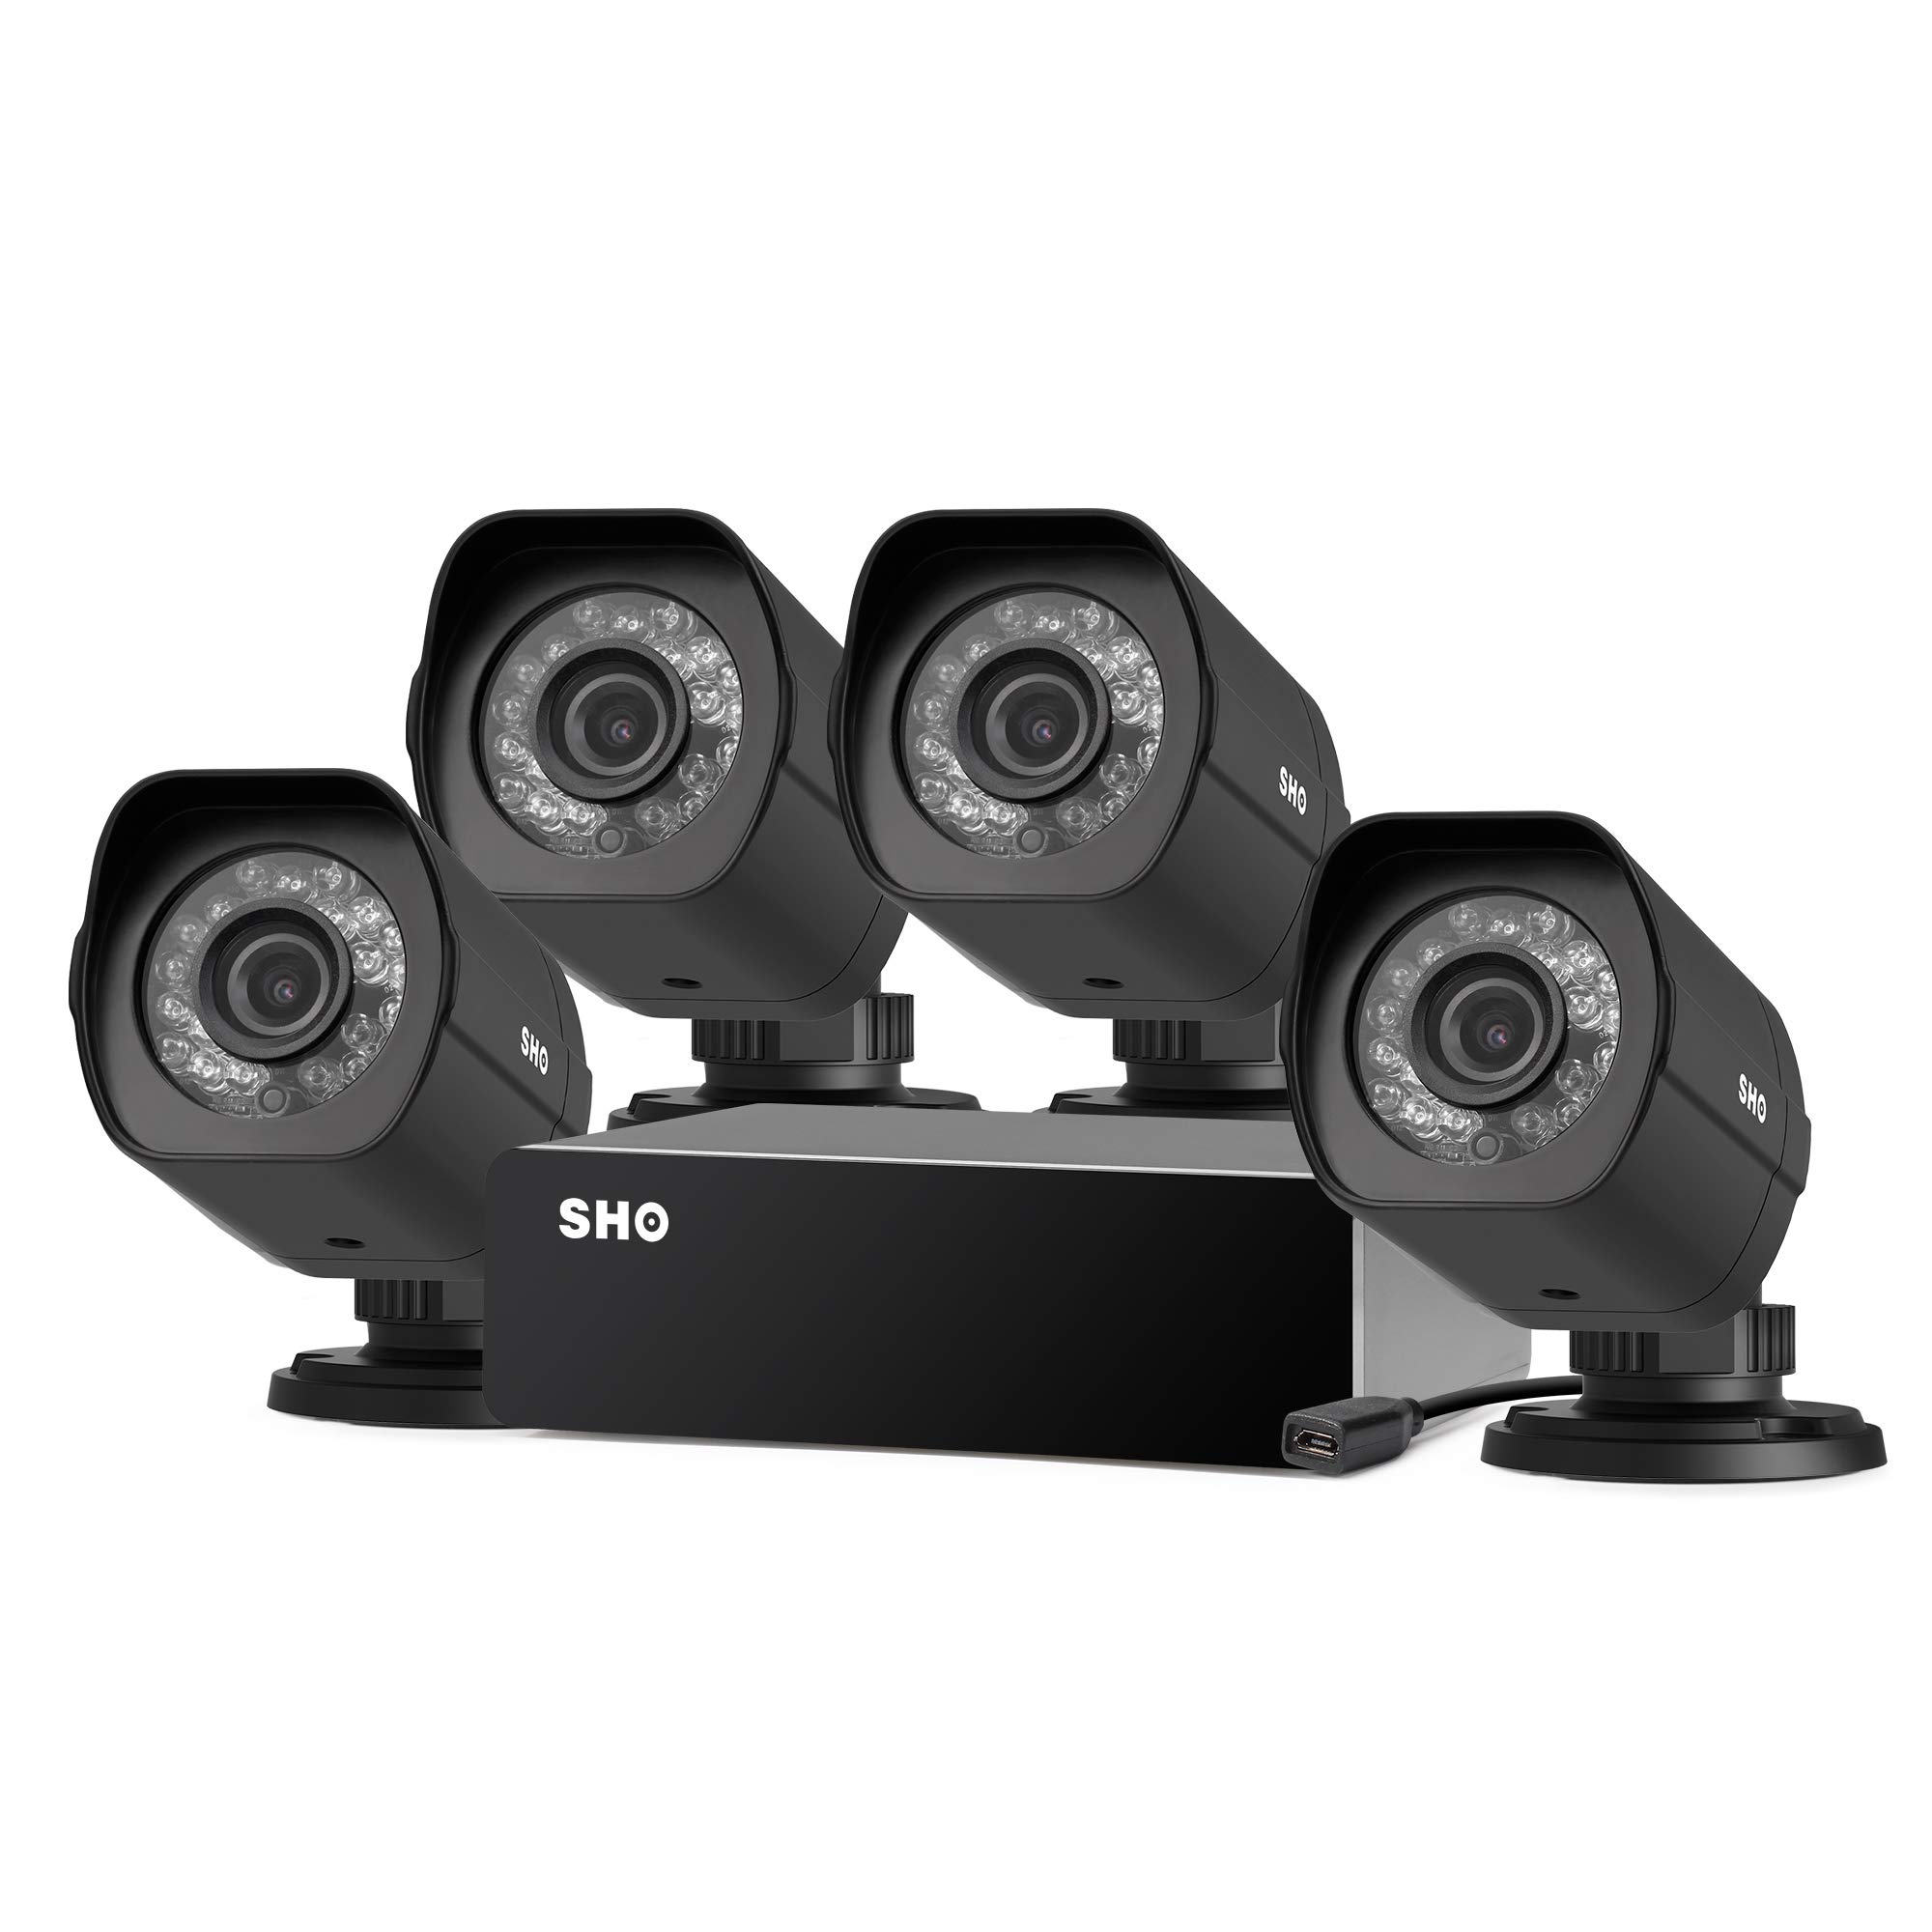 SHO 4 Pack 720P HD Weatherproof sPoE Security Camera w/8CH sPoE Repeater for Power & Data Transmission, Remote Monitoring (NVR not Included) - [Free 6-Month Cloud Service for Recording] by Zmodo